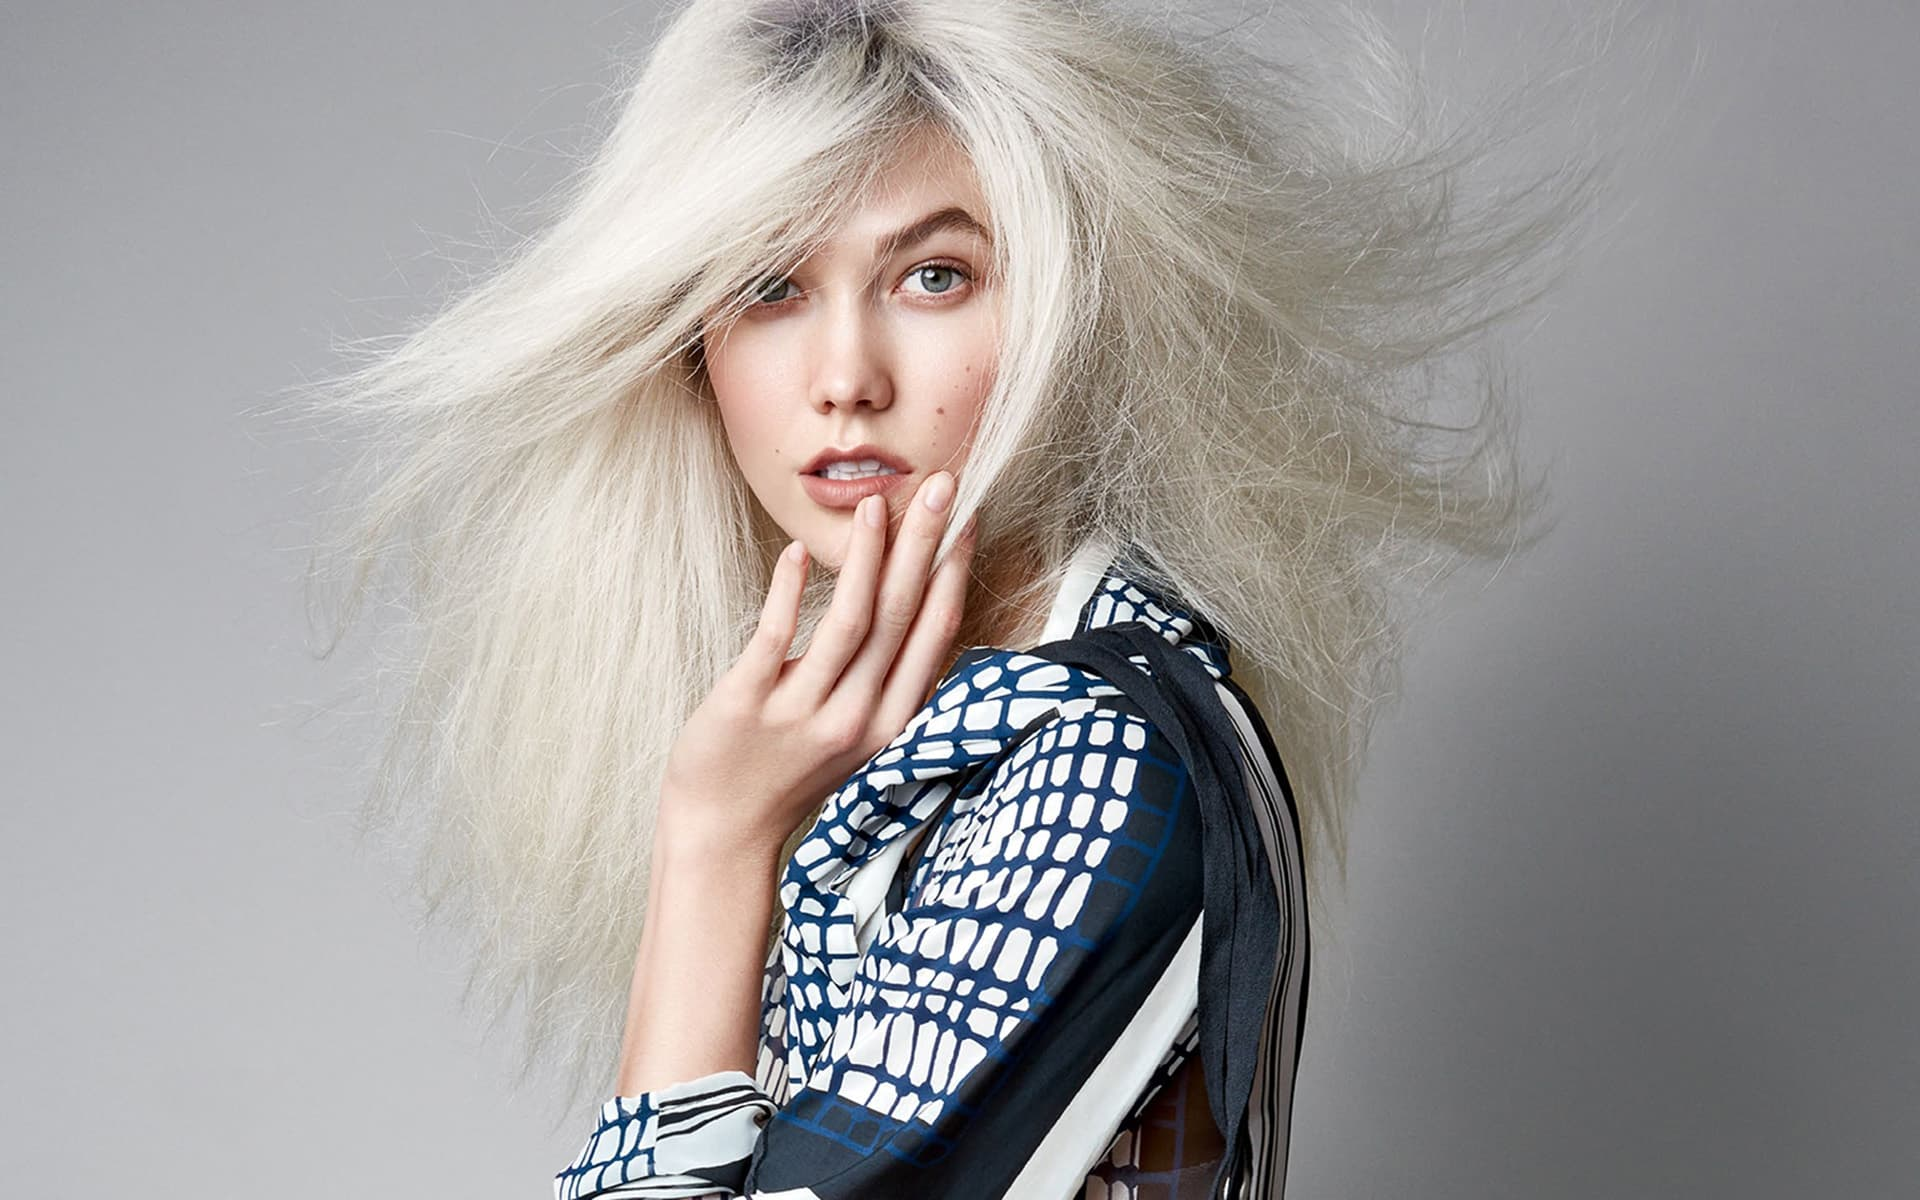 karlie kloss white hair wallpaper 66703